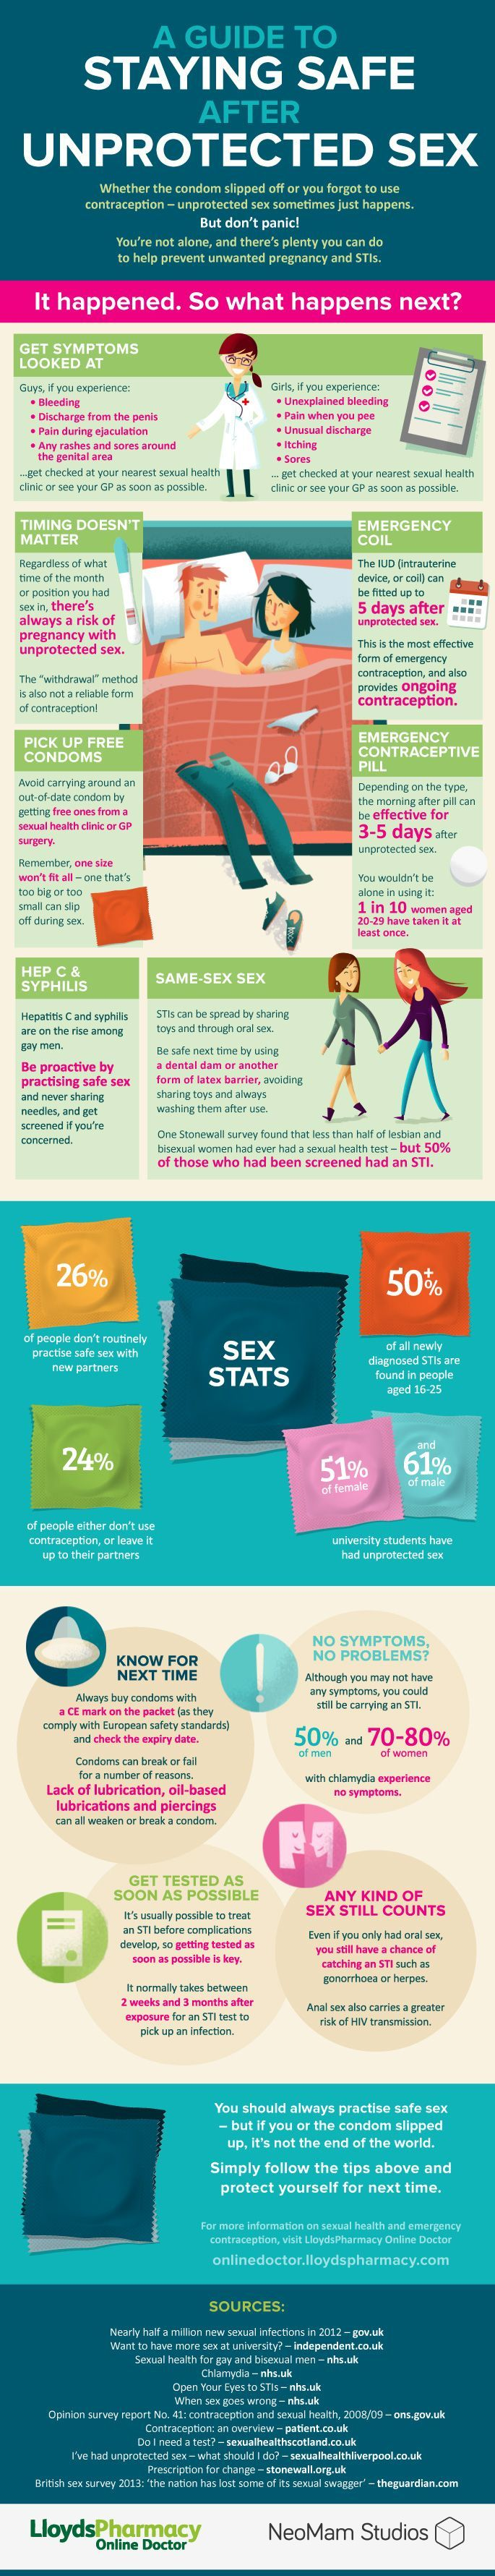 Unprotected Sex Facts 56